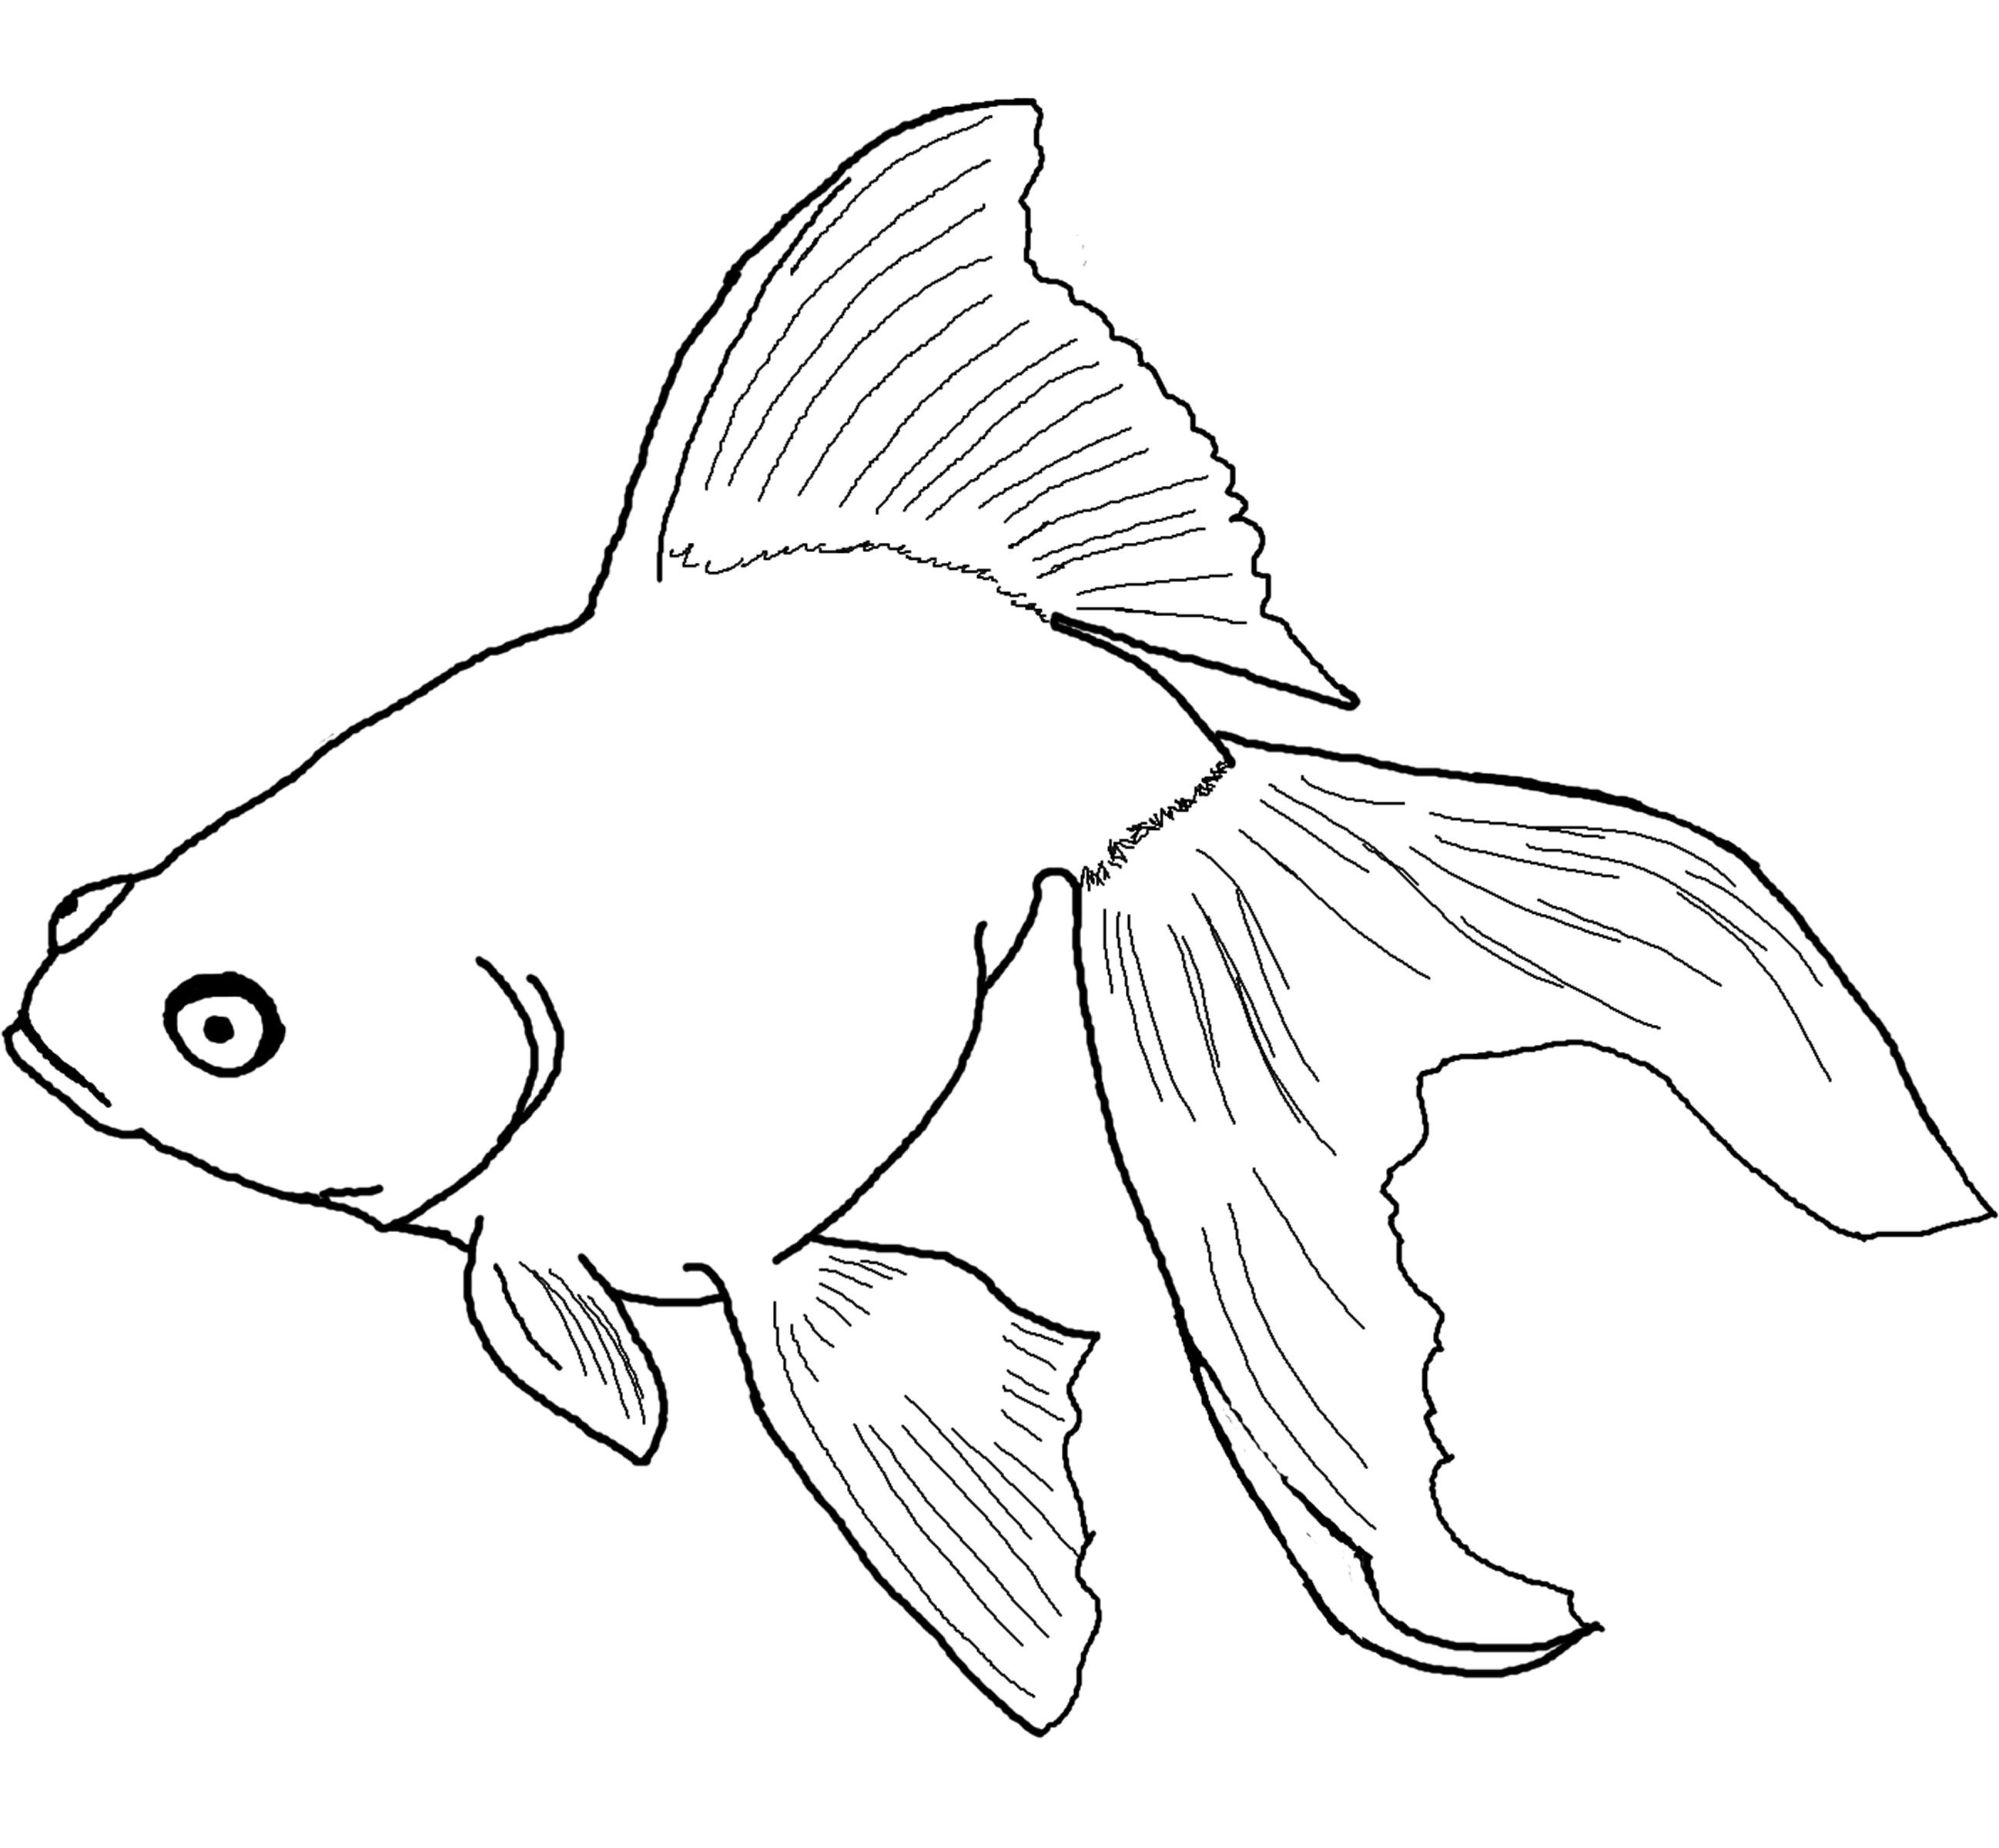 2596x2400 Betta Fish Coloring Page Free Printable Fish Coloring Pages